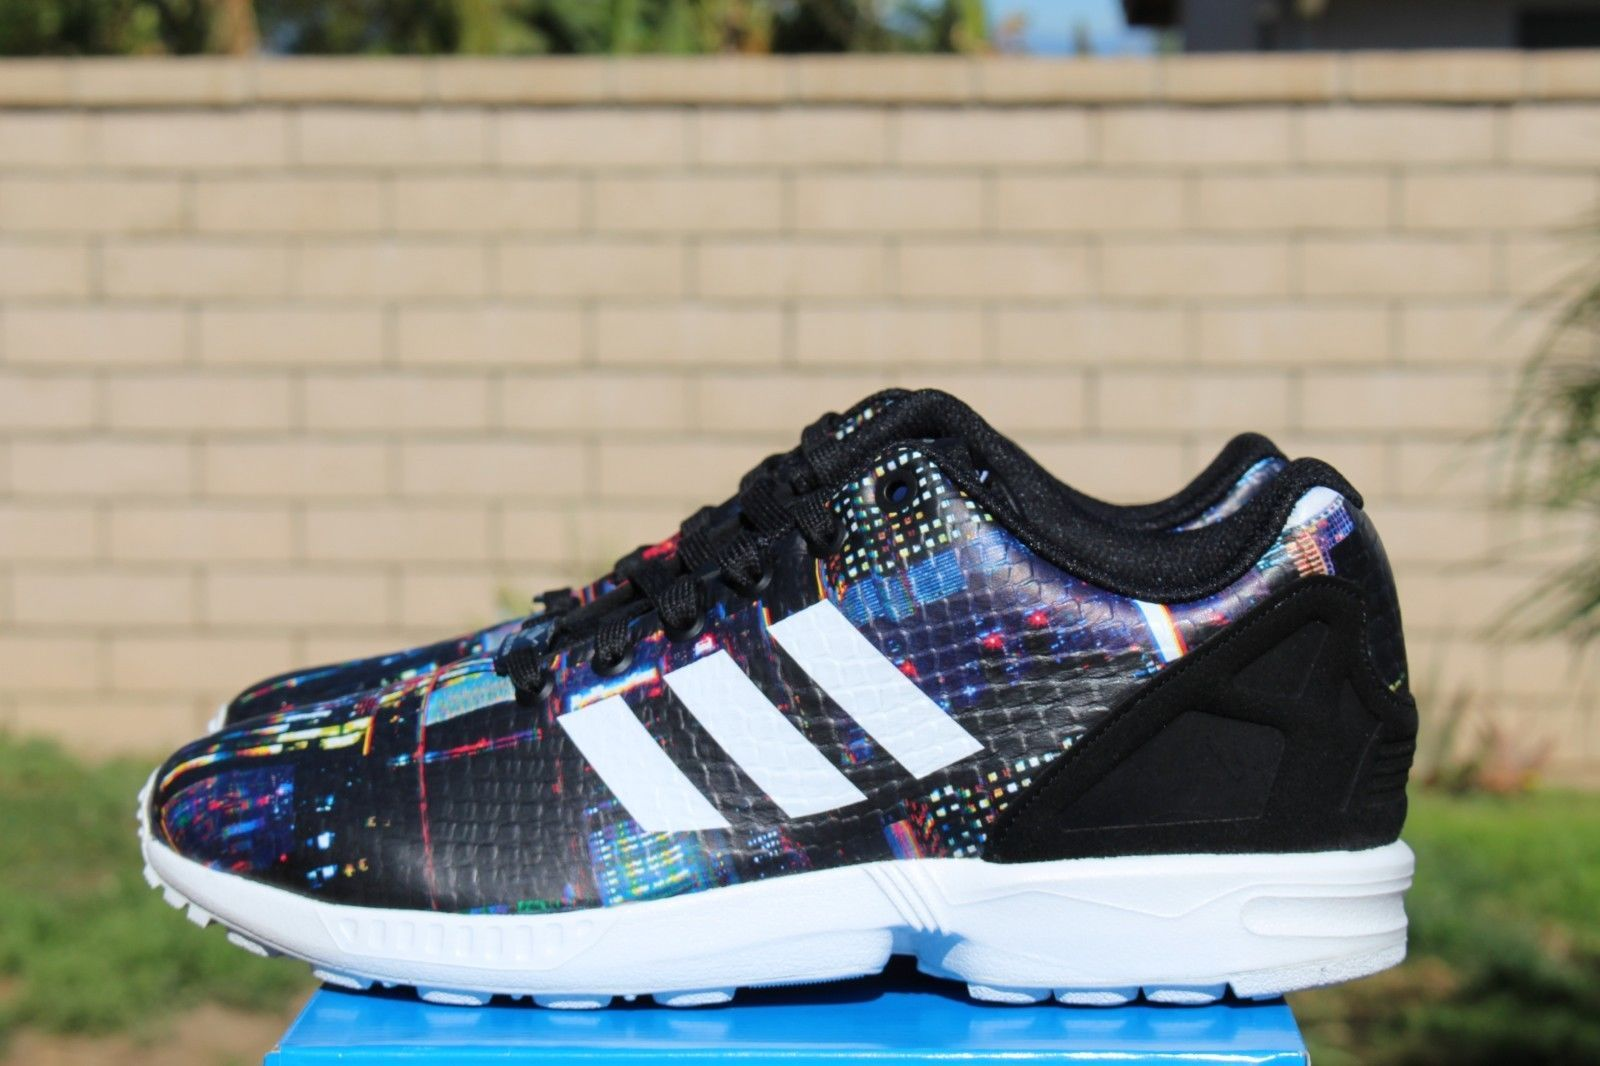 ADIDAS ZX FLUX BLACK WHITE TOKYO PACK CITY LIGHTS B25834 19900